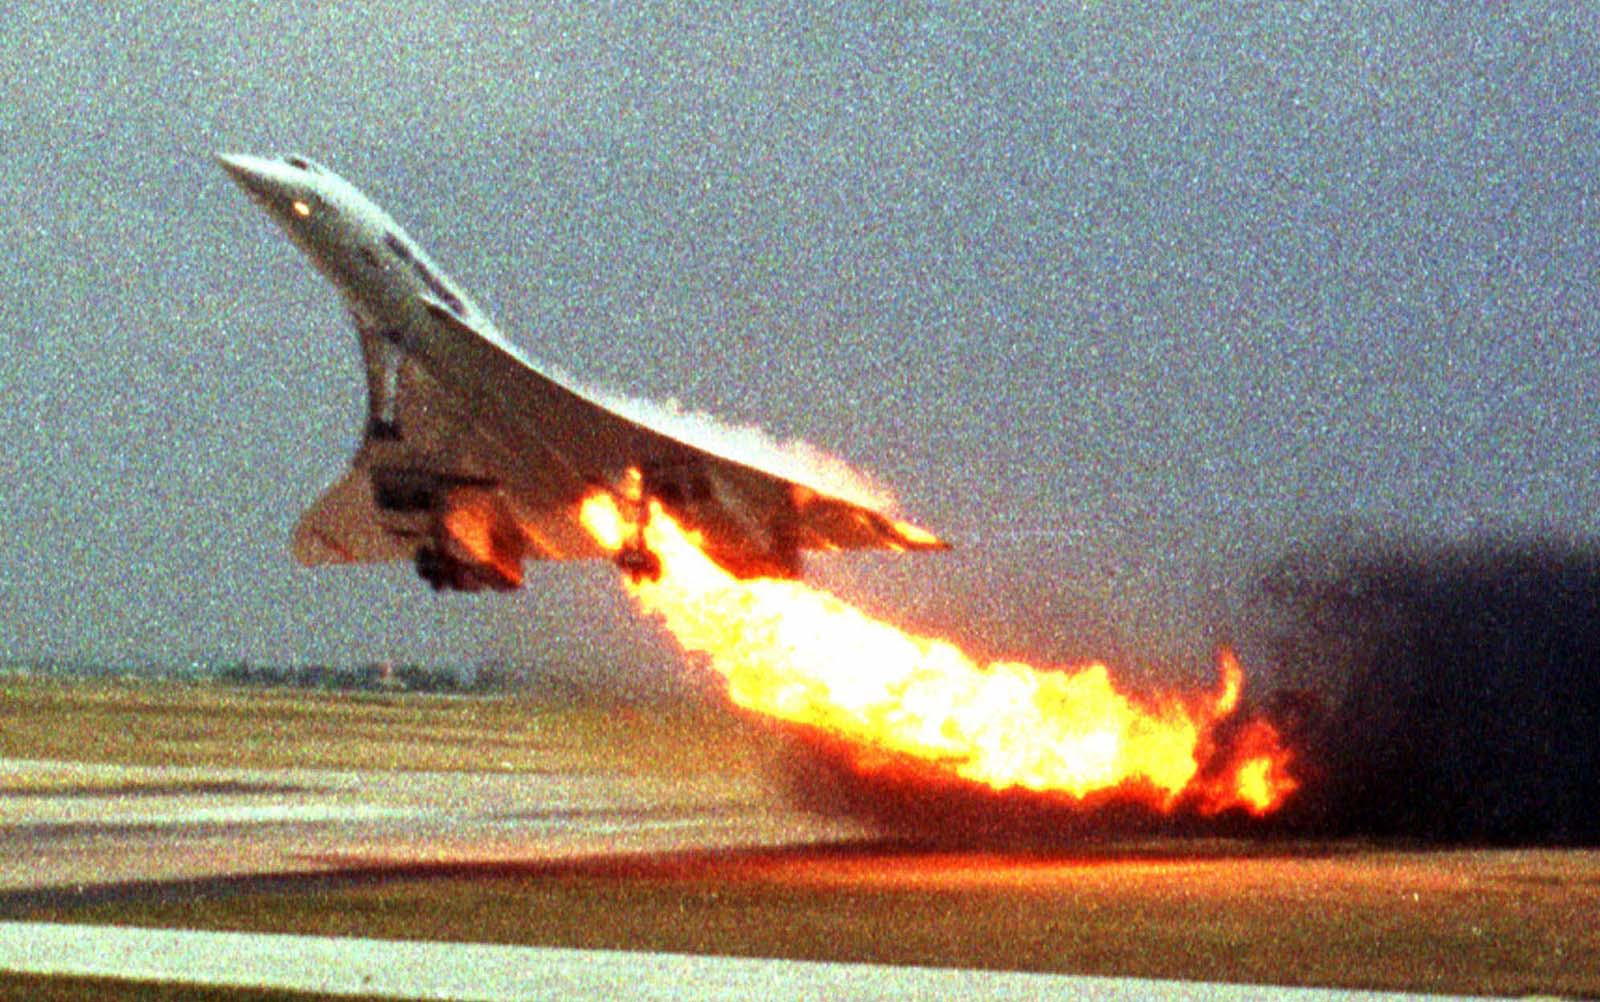 On July 25, 2000, an Air France Concorde burst into flames and crashed shortly after taking off. The plane caught fire after a blown tire ruptured the Concorde's fuel tanks, and 113 people died in the crash.